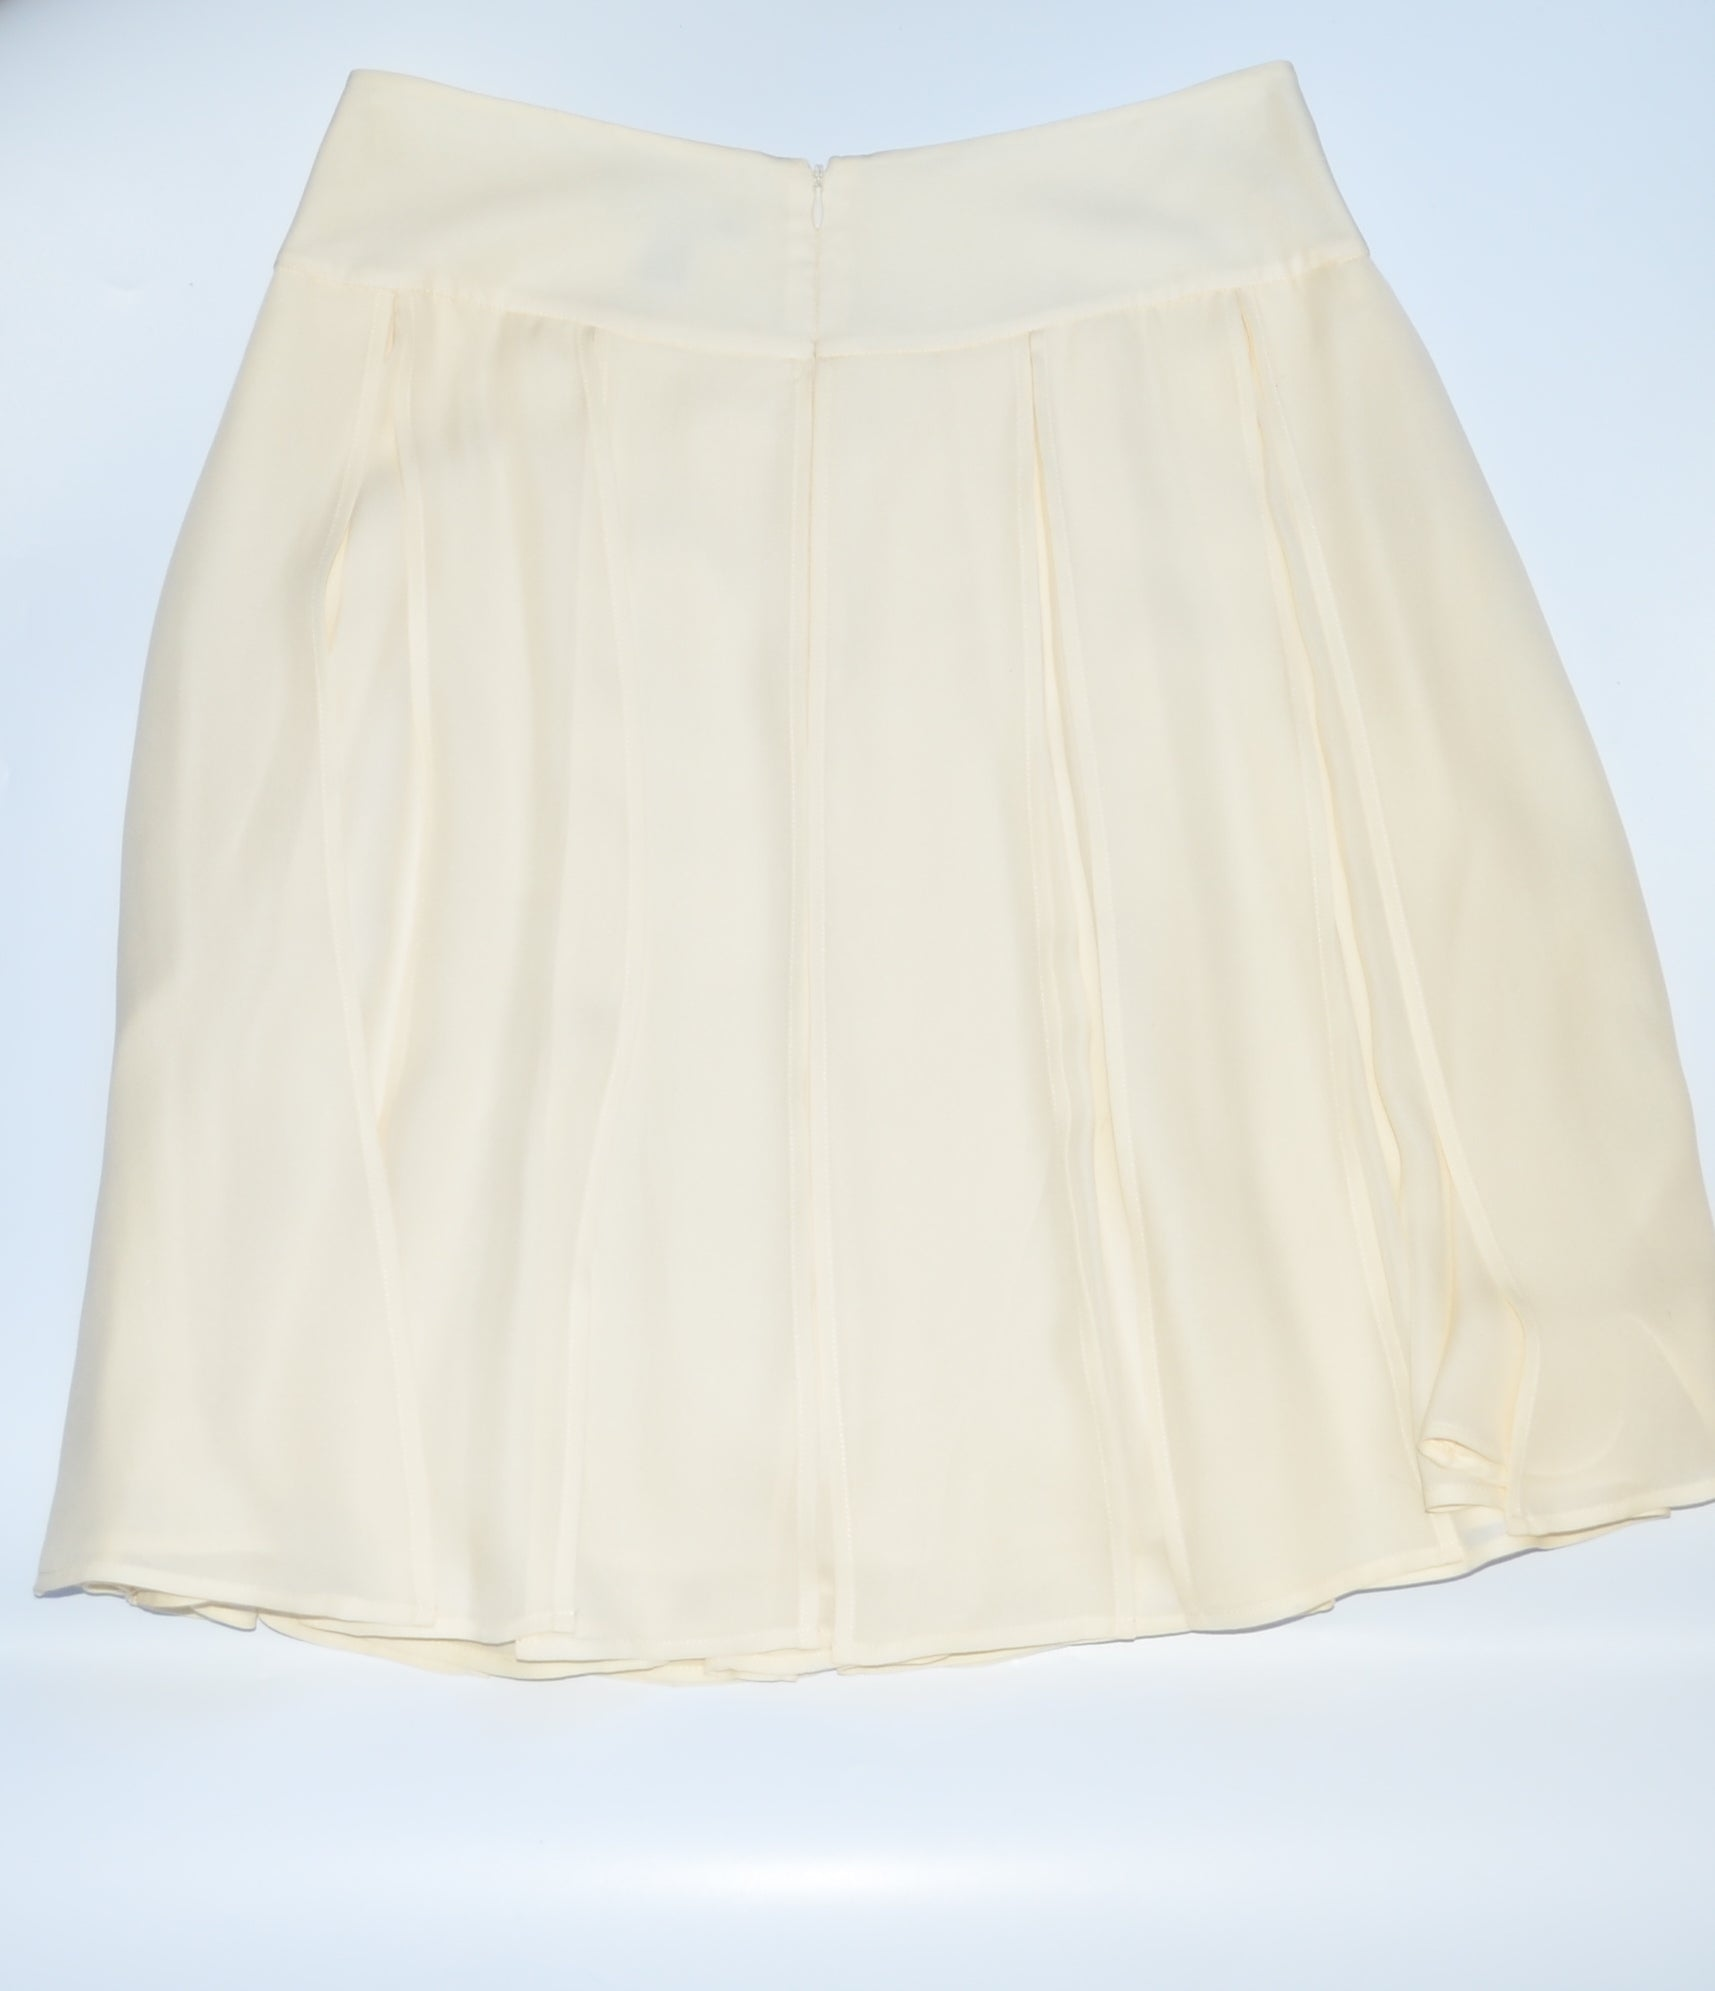 Lauren Ralph Lauren Skirt 8 - Iconics Preloved Luxury